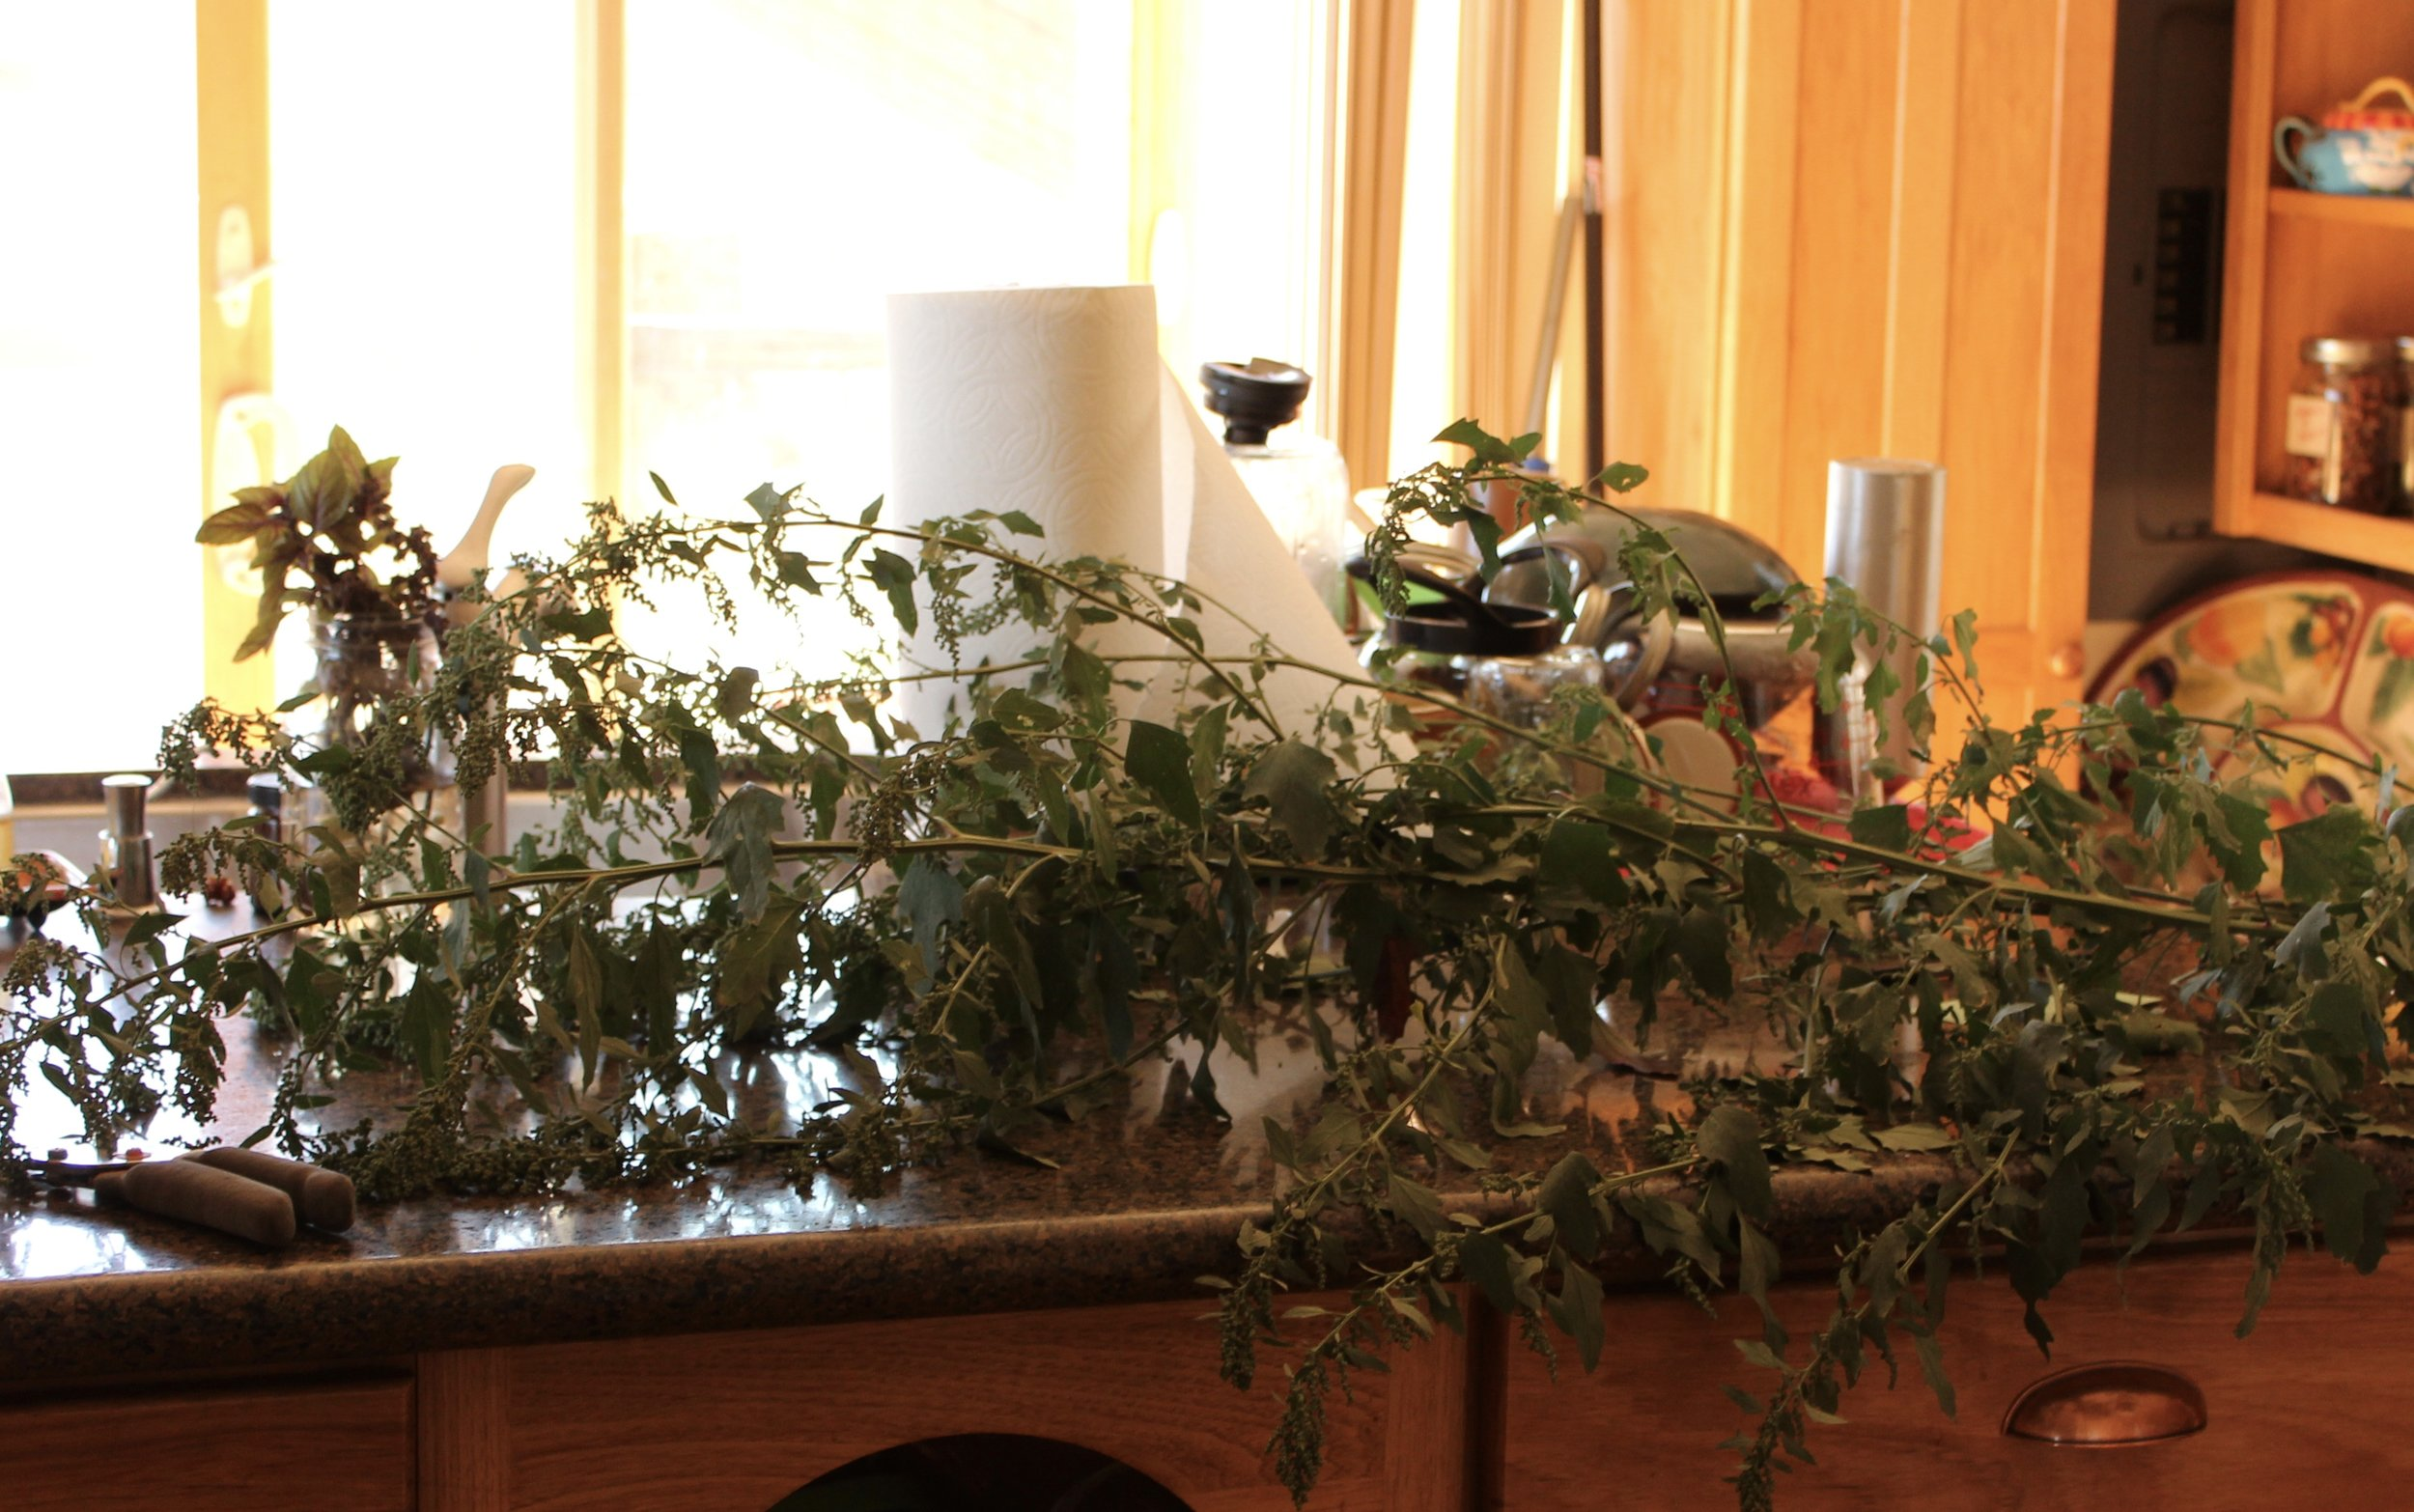 Here are two stalks I cut.  They are about 5 feet long.  You can see the woody stalk and the smaller stems with the leaves and flowers growing off them all the way up.  Sorry about the dishes in the background...I don't have a dishwasher, so they dry out! :-)